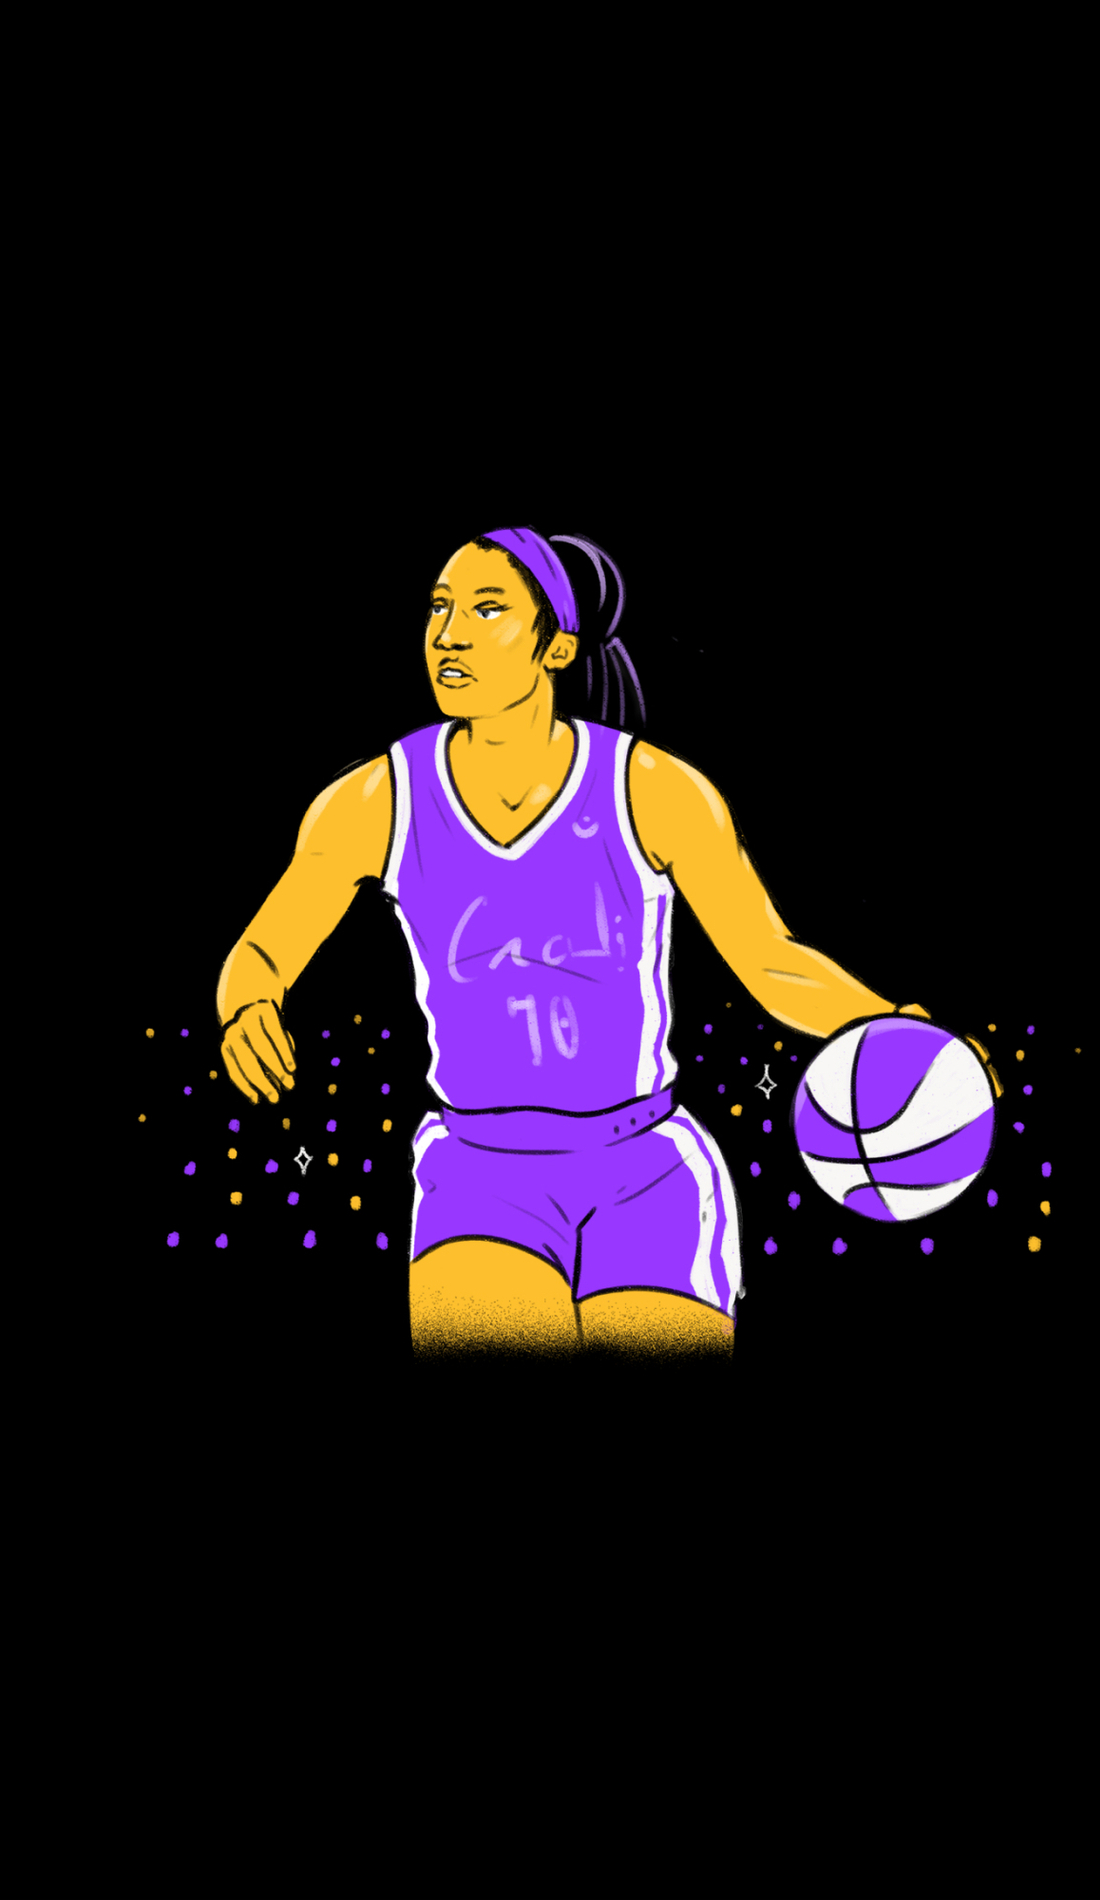 A Delaware Fightin Blue Hens Womens Basketball live event